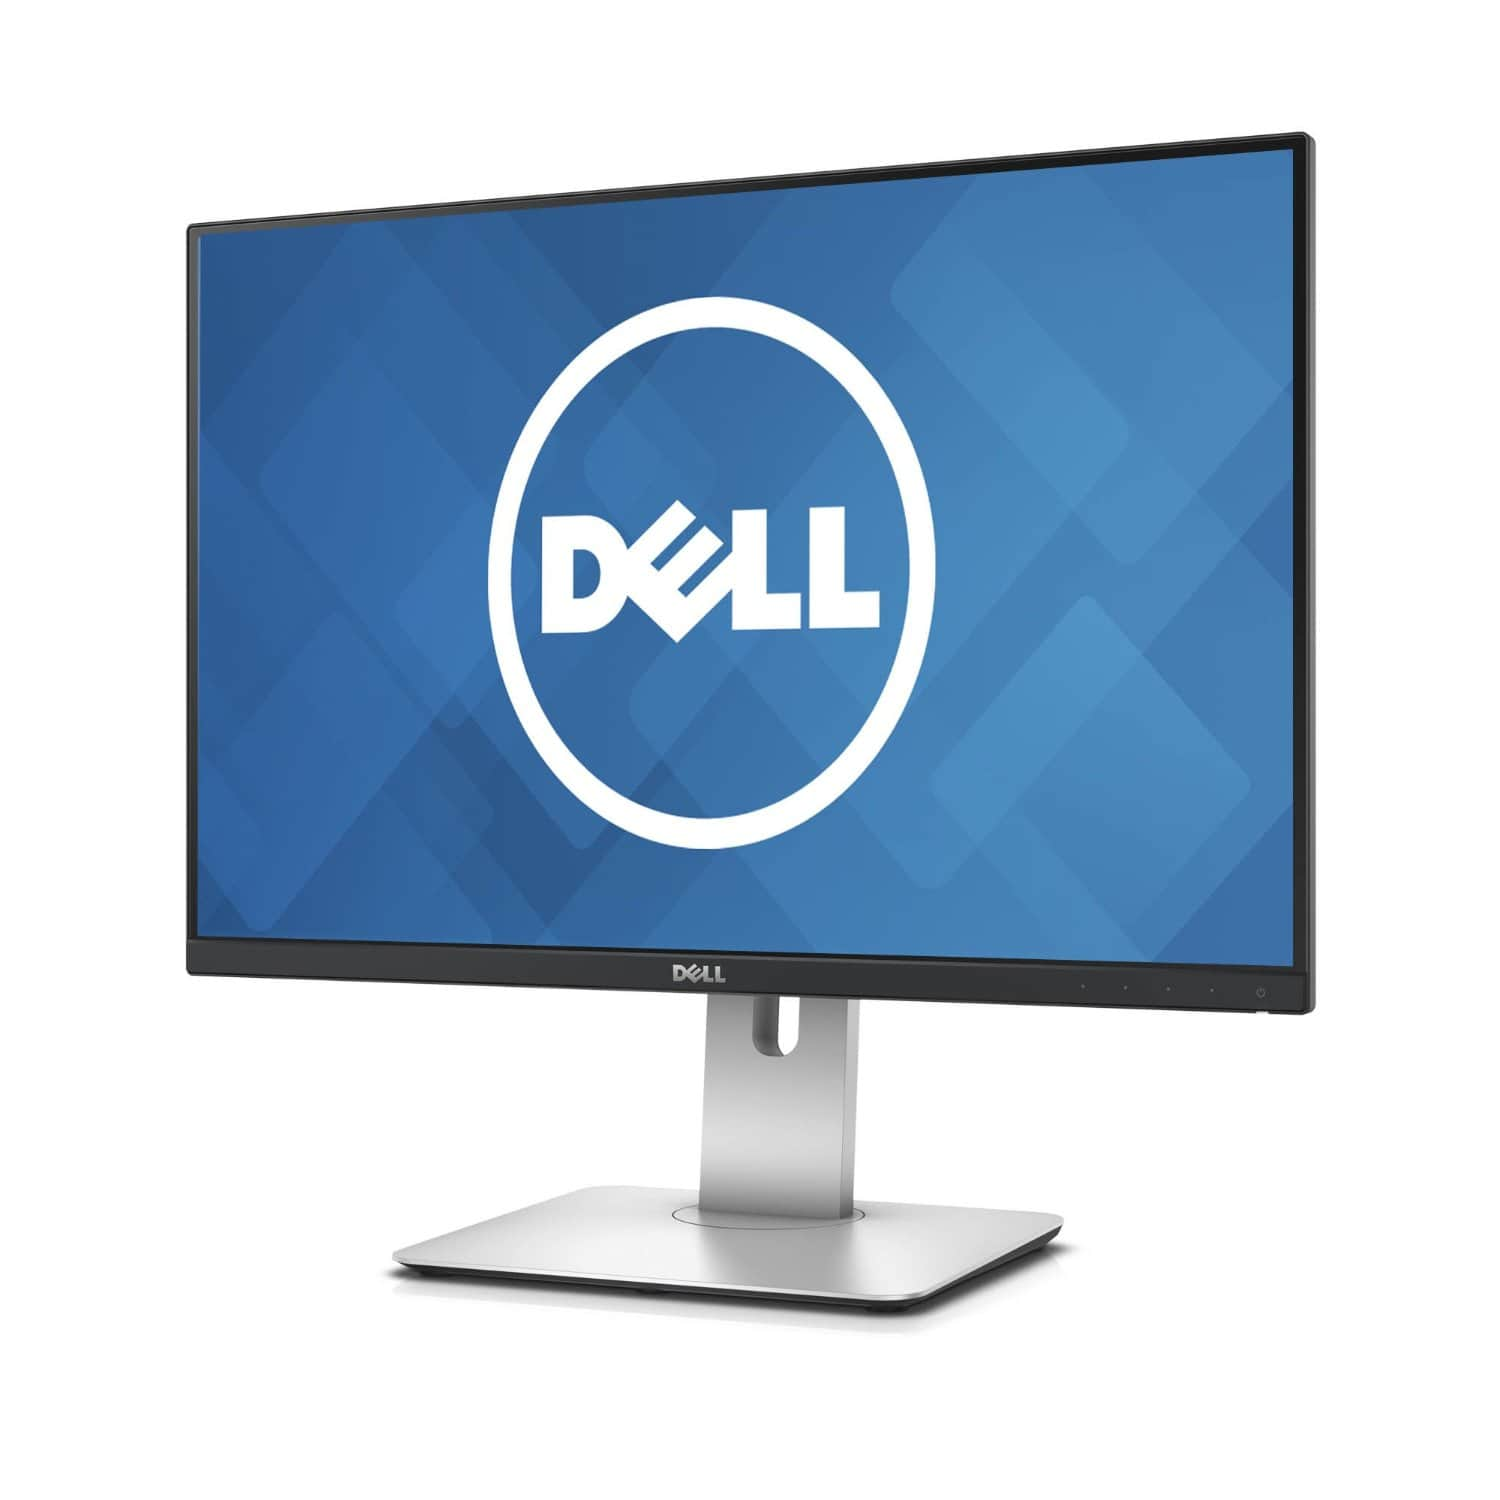 "24"" Dell U2415 UltraSharp 1920x1200 IPS LED Monitor $239.99 + Free Shipping"